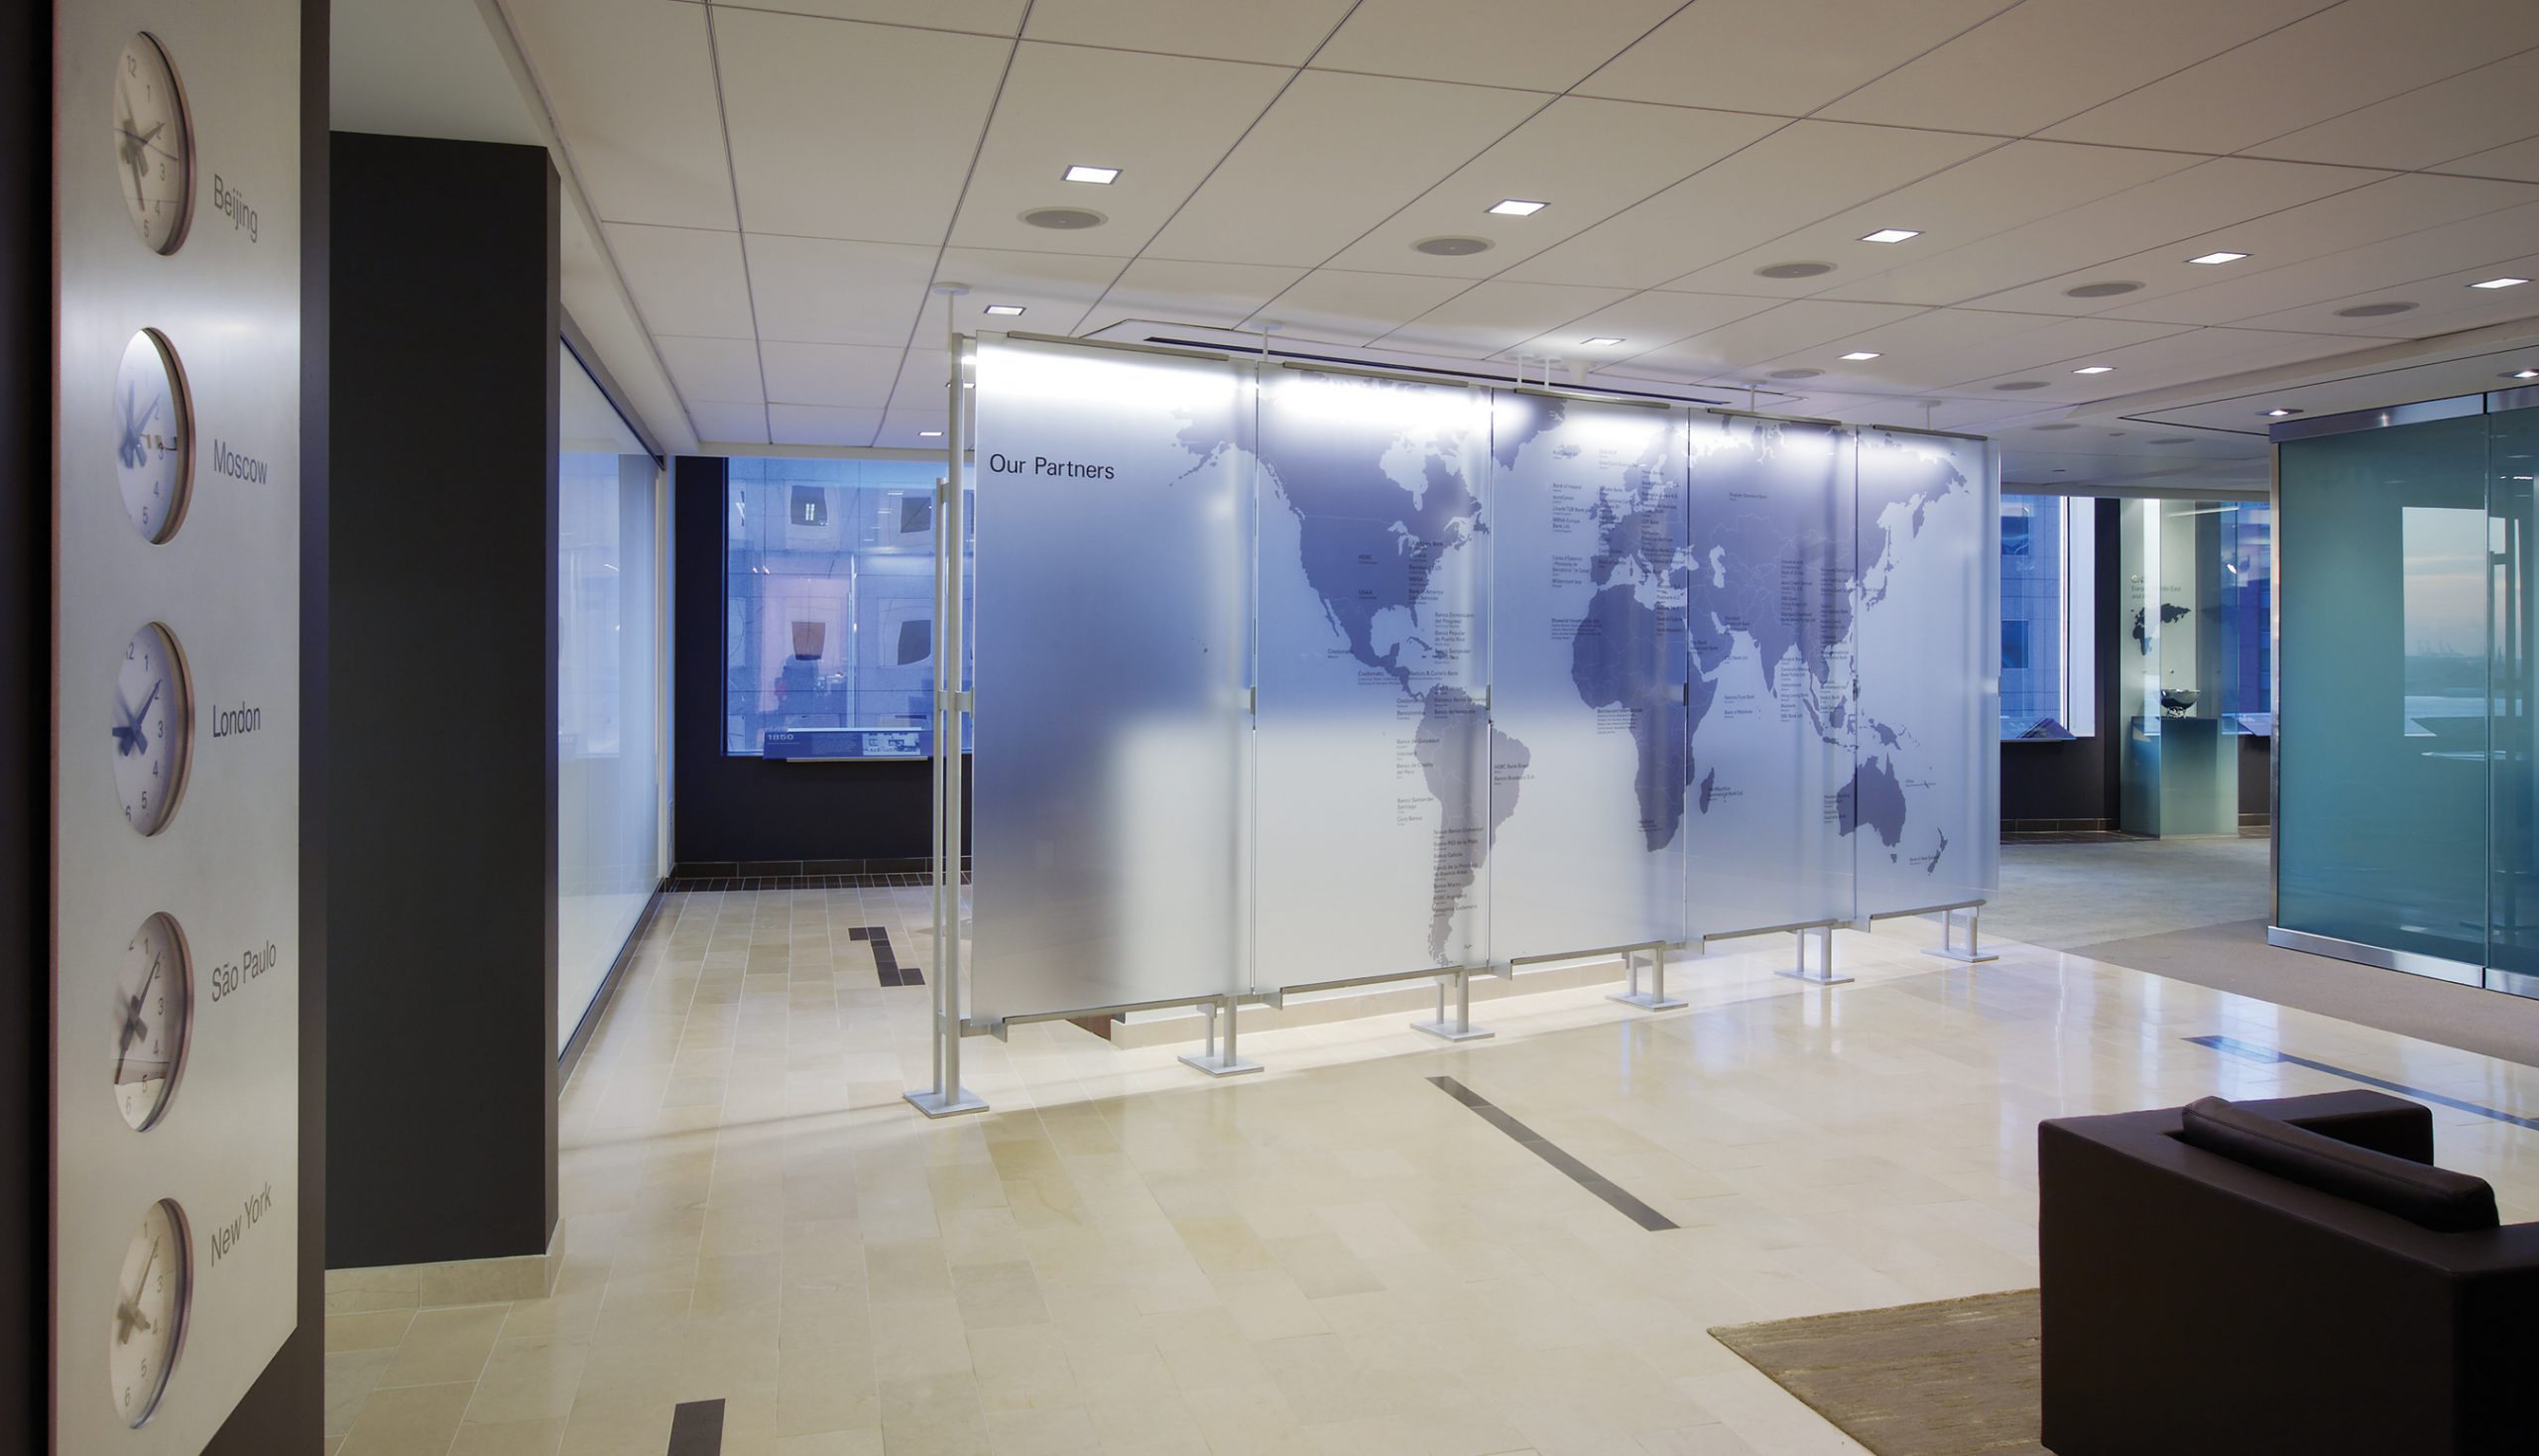 Project image 1 for Partner Briefing Center, American Express